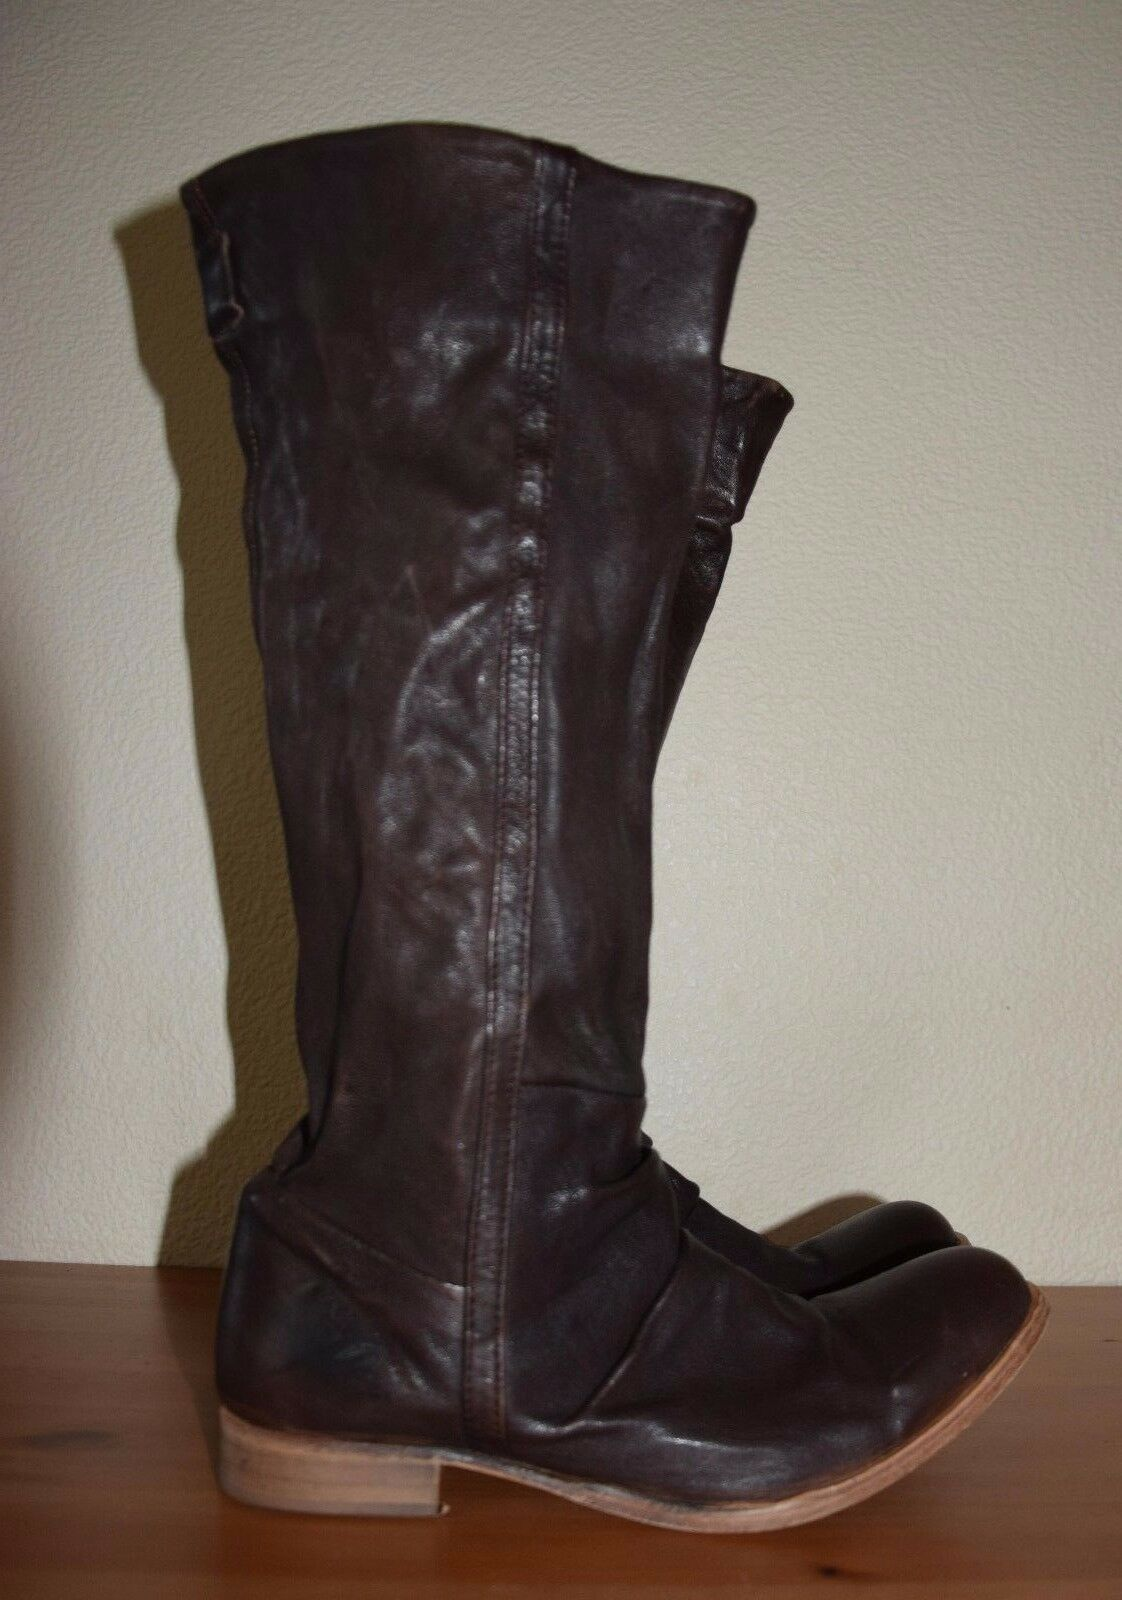 H By Hudson Dark Brown Knee High Leather Boots Size 41